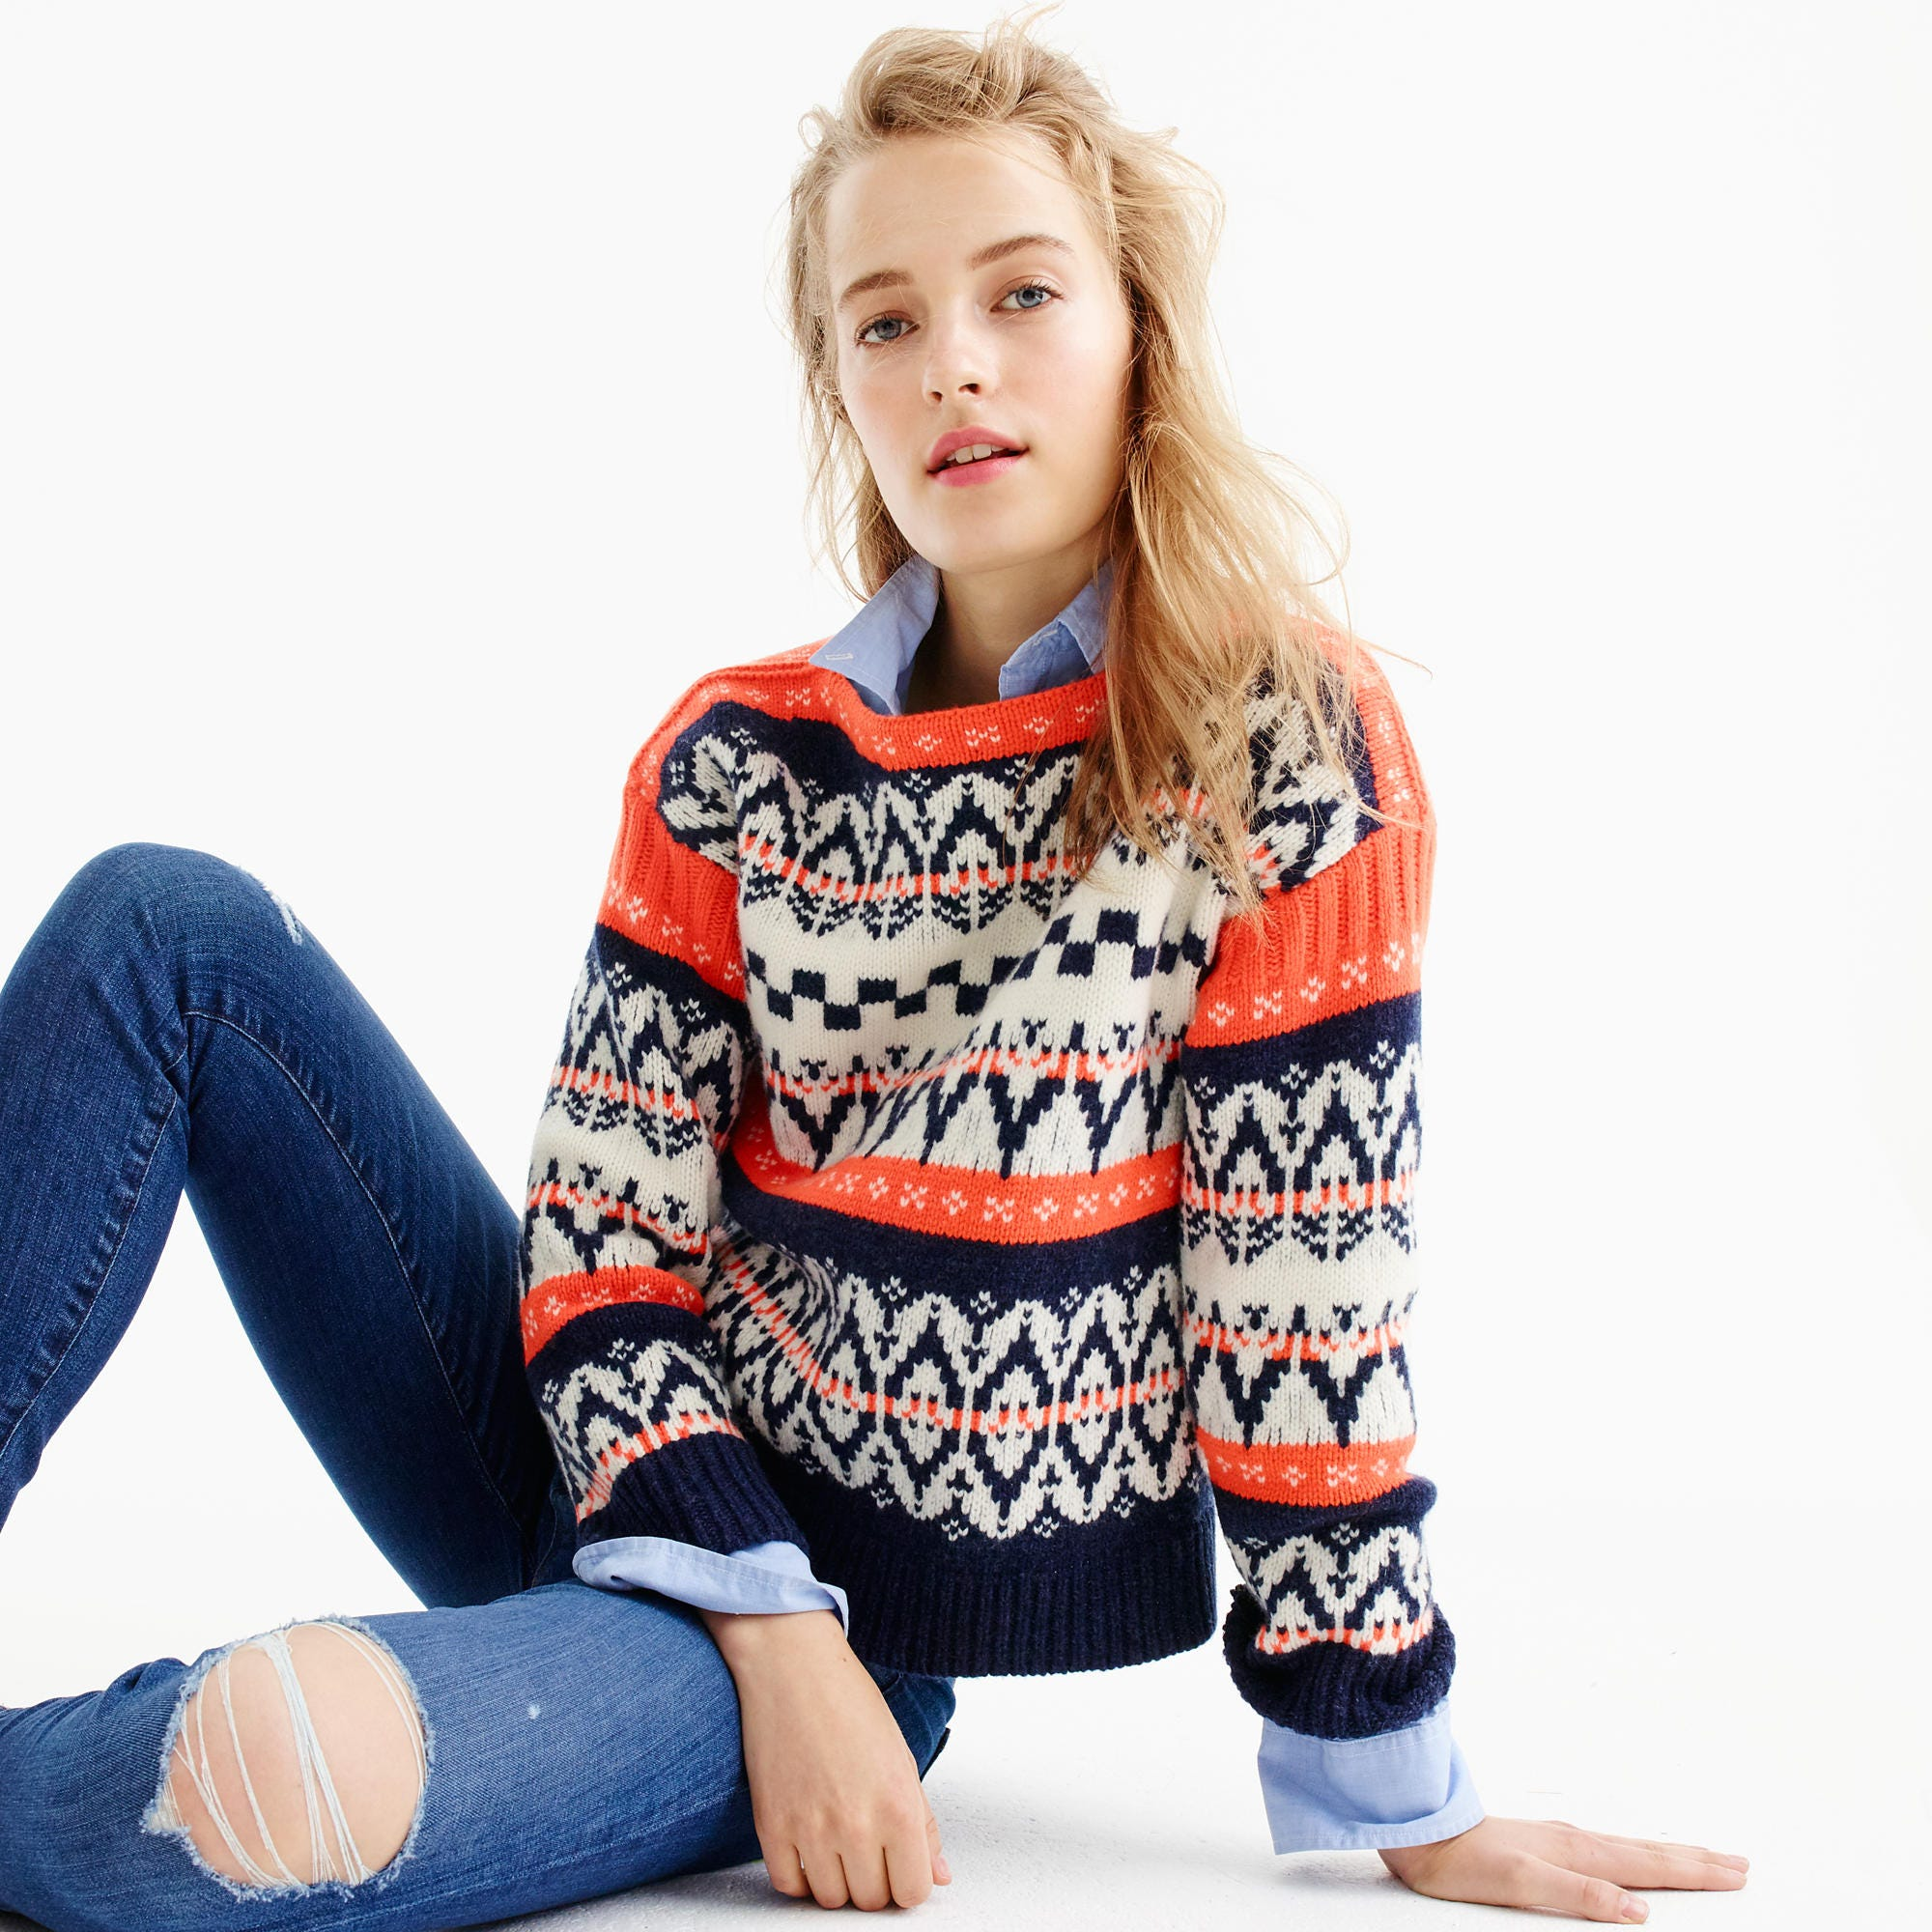 J Crew New Arrivals Winter Clothing Wishlist Gift Ideas